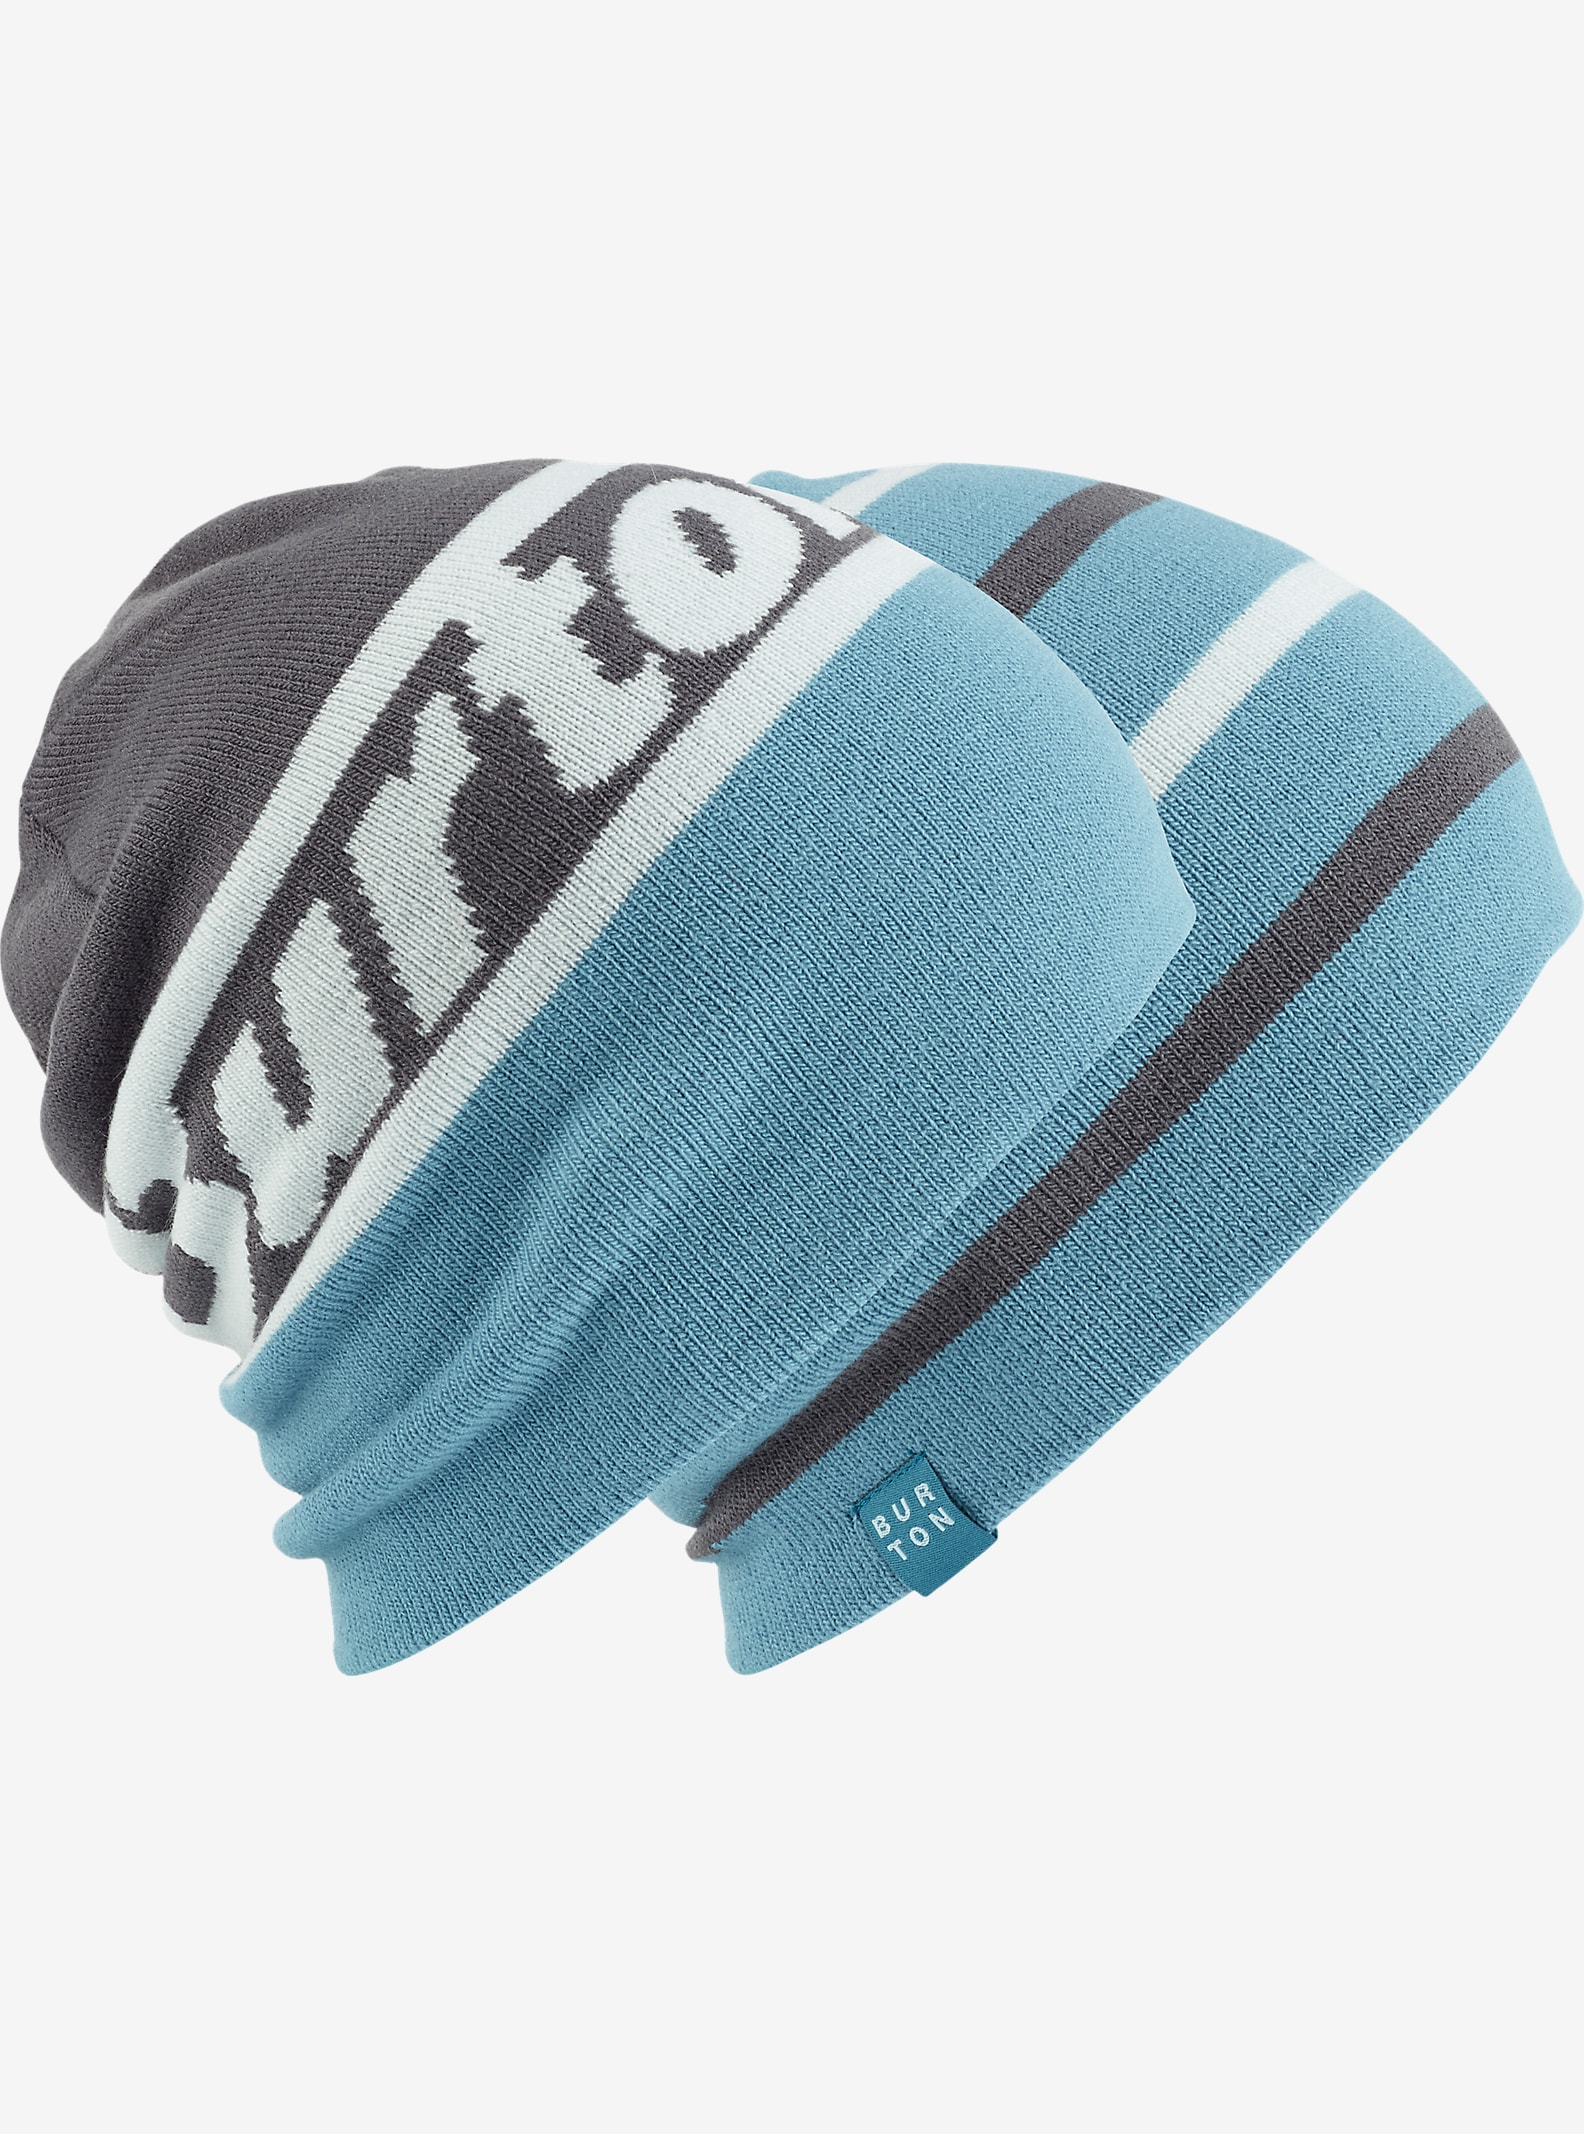 Burton Beanie 2-Pack - Reversible shown in Faded / Larkspur